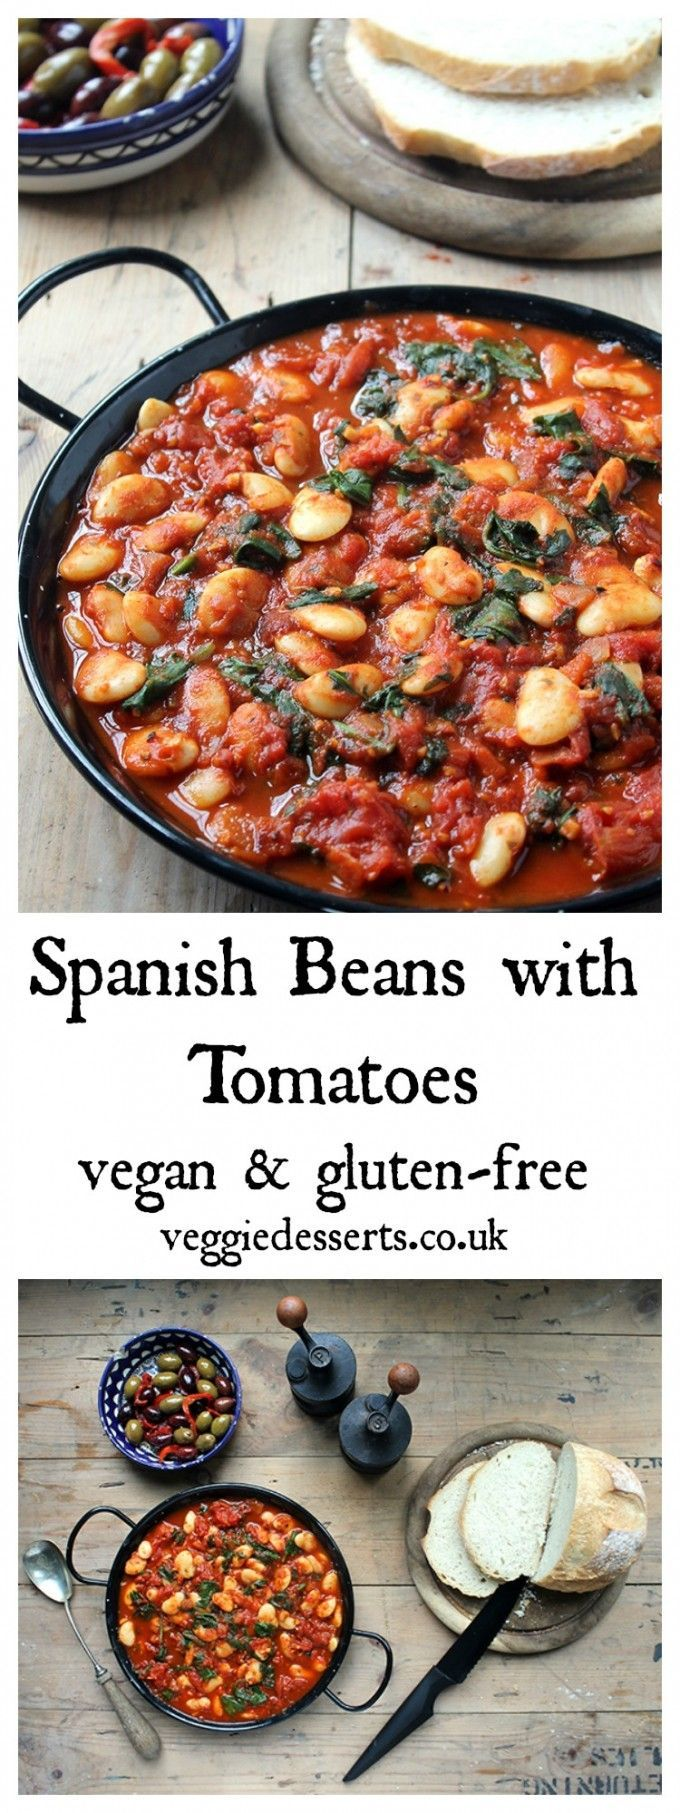 Spanish Beans with Tomatoes Spanish Beans with Tomatoes | Vegan & Gluten-Free | Veggie Desserts Blog  These Spanish beans with tomatoes and smokey sweet spices are so easy to make. They're perfect to serve as tapas or a side dish. Vegan and gluten-free.Spanish Beans with Tomatoes | Vegan & Gluten-Free | Veggie Desserts Blog  These Spanish beans with tomatoes a...